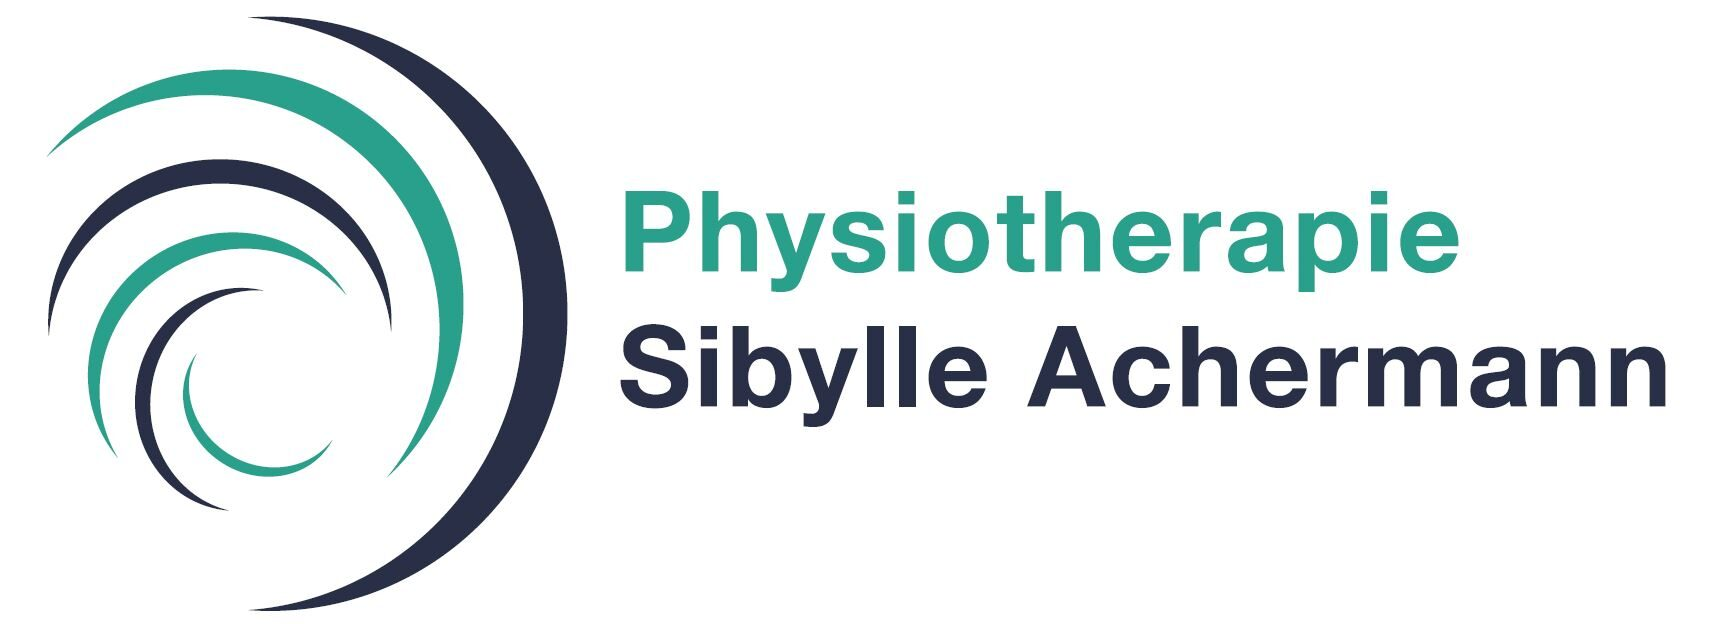 Physiotherapie Sibylle Achermann